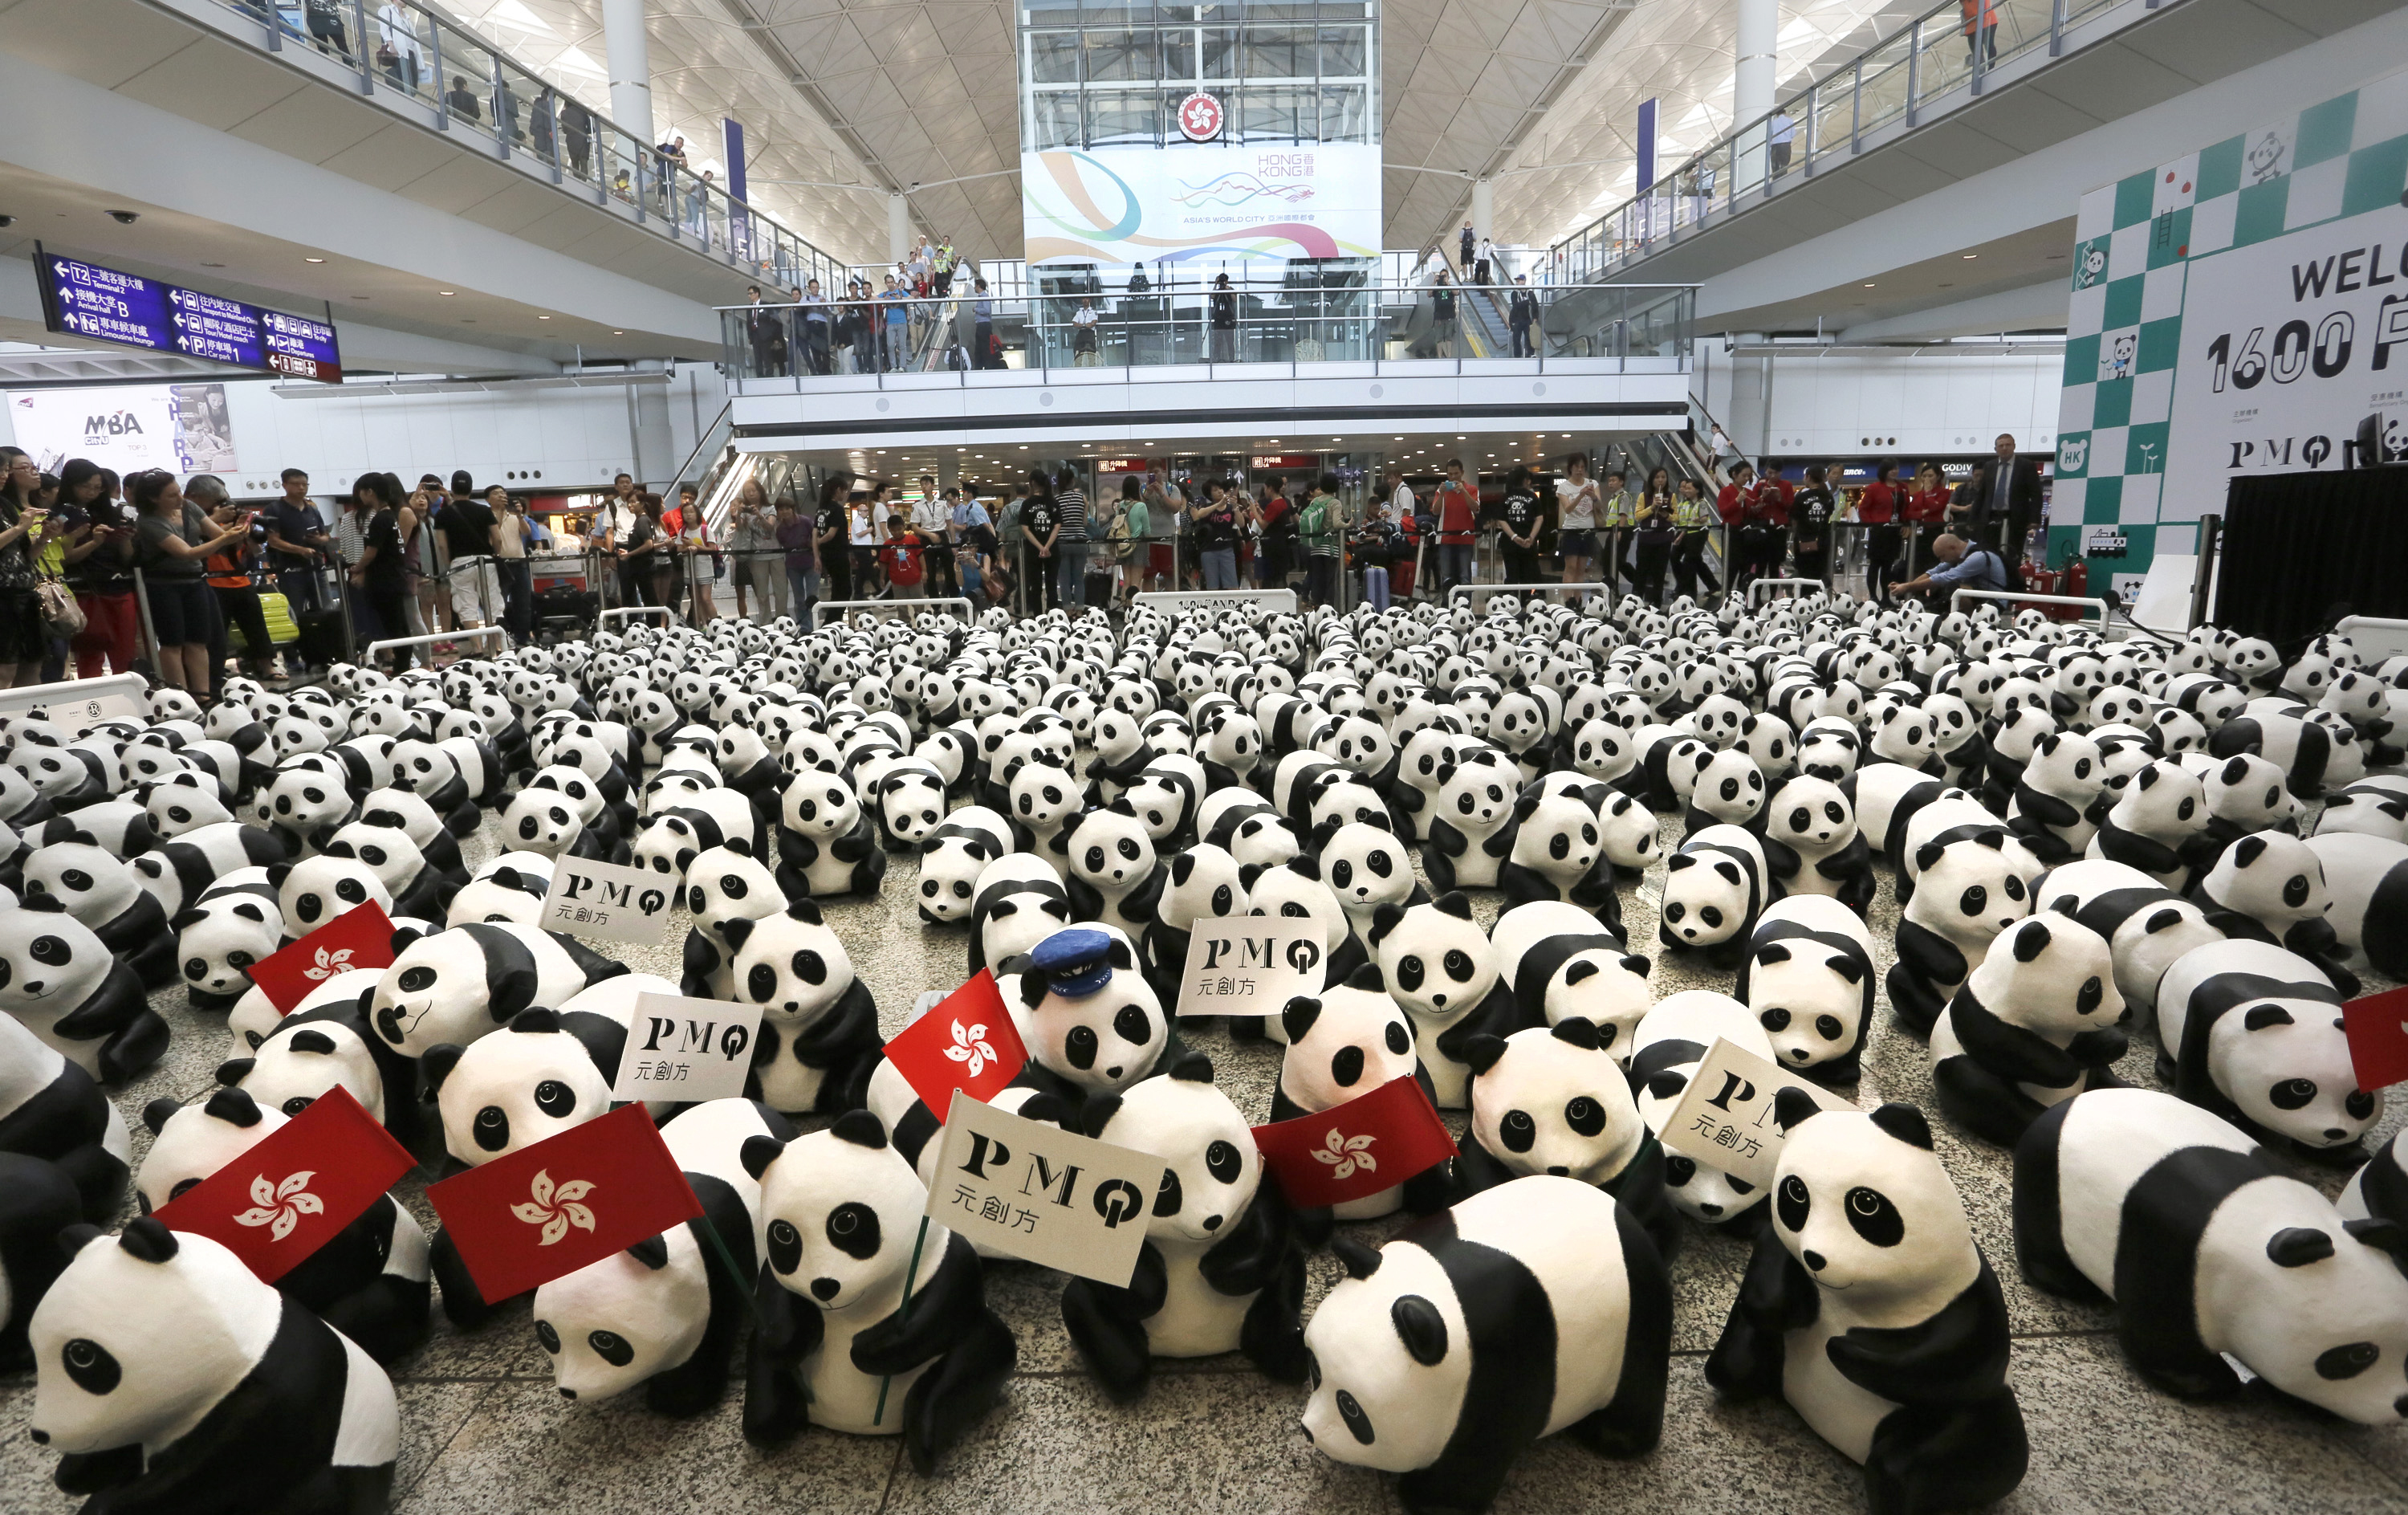 1,600 paper mache pandas, designed by Paulo Grangeon, are installed in the Hong Kong airport to promote awareness about the endangered species.